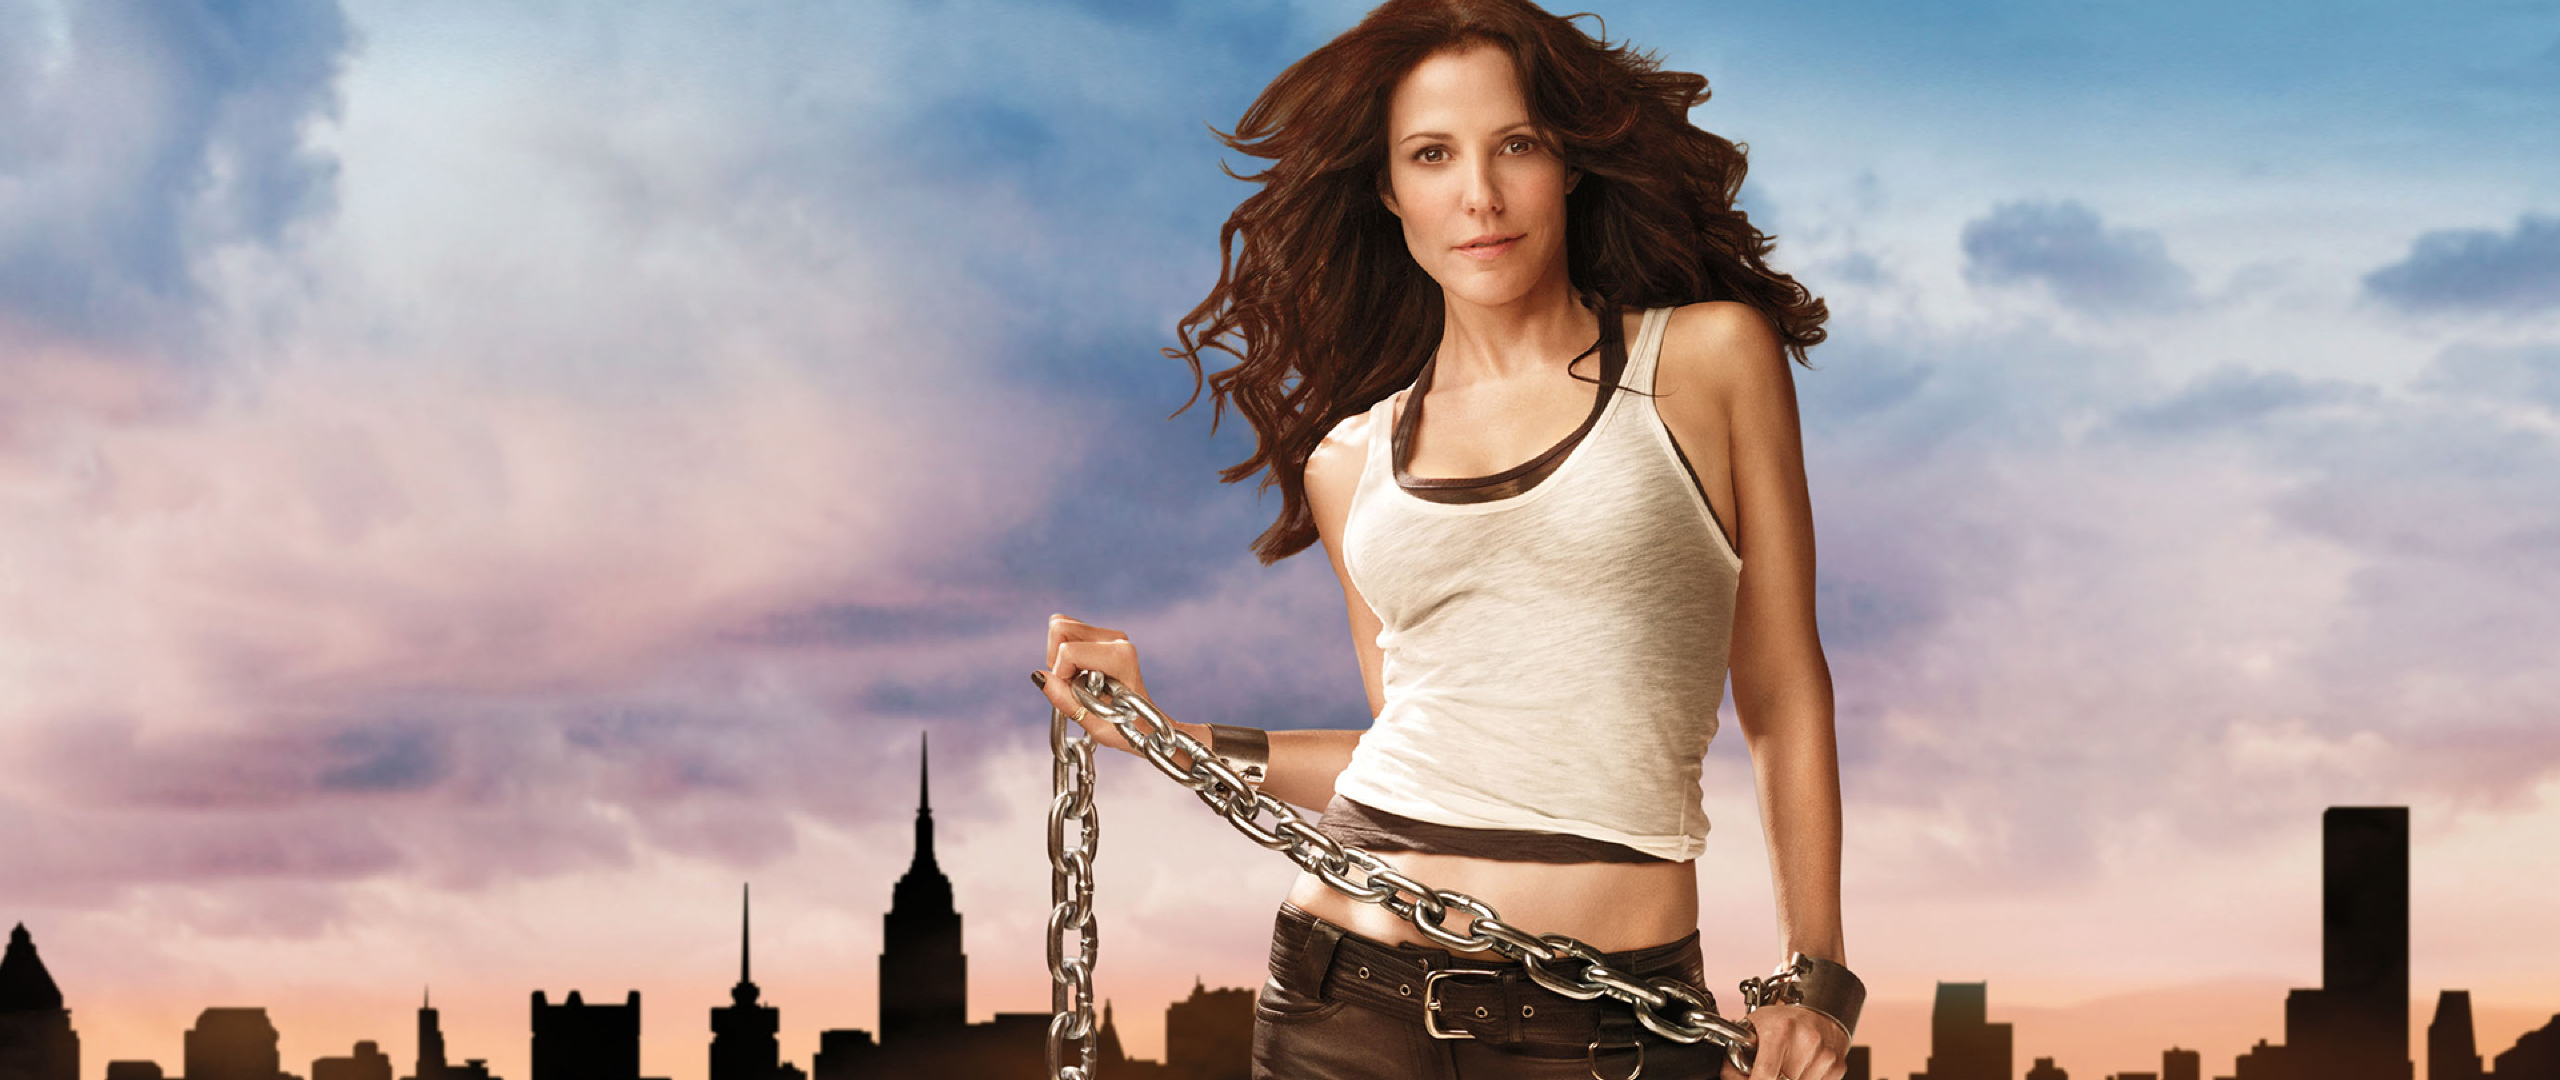 2560x1080 - Mary-Louise Parker Wallpapers 2